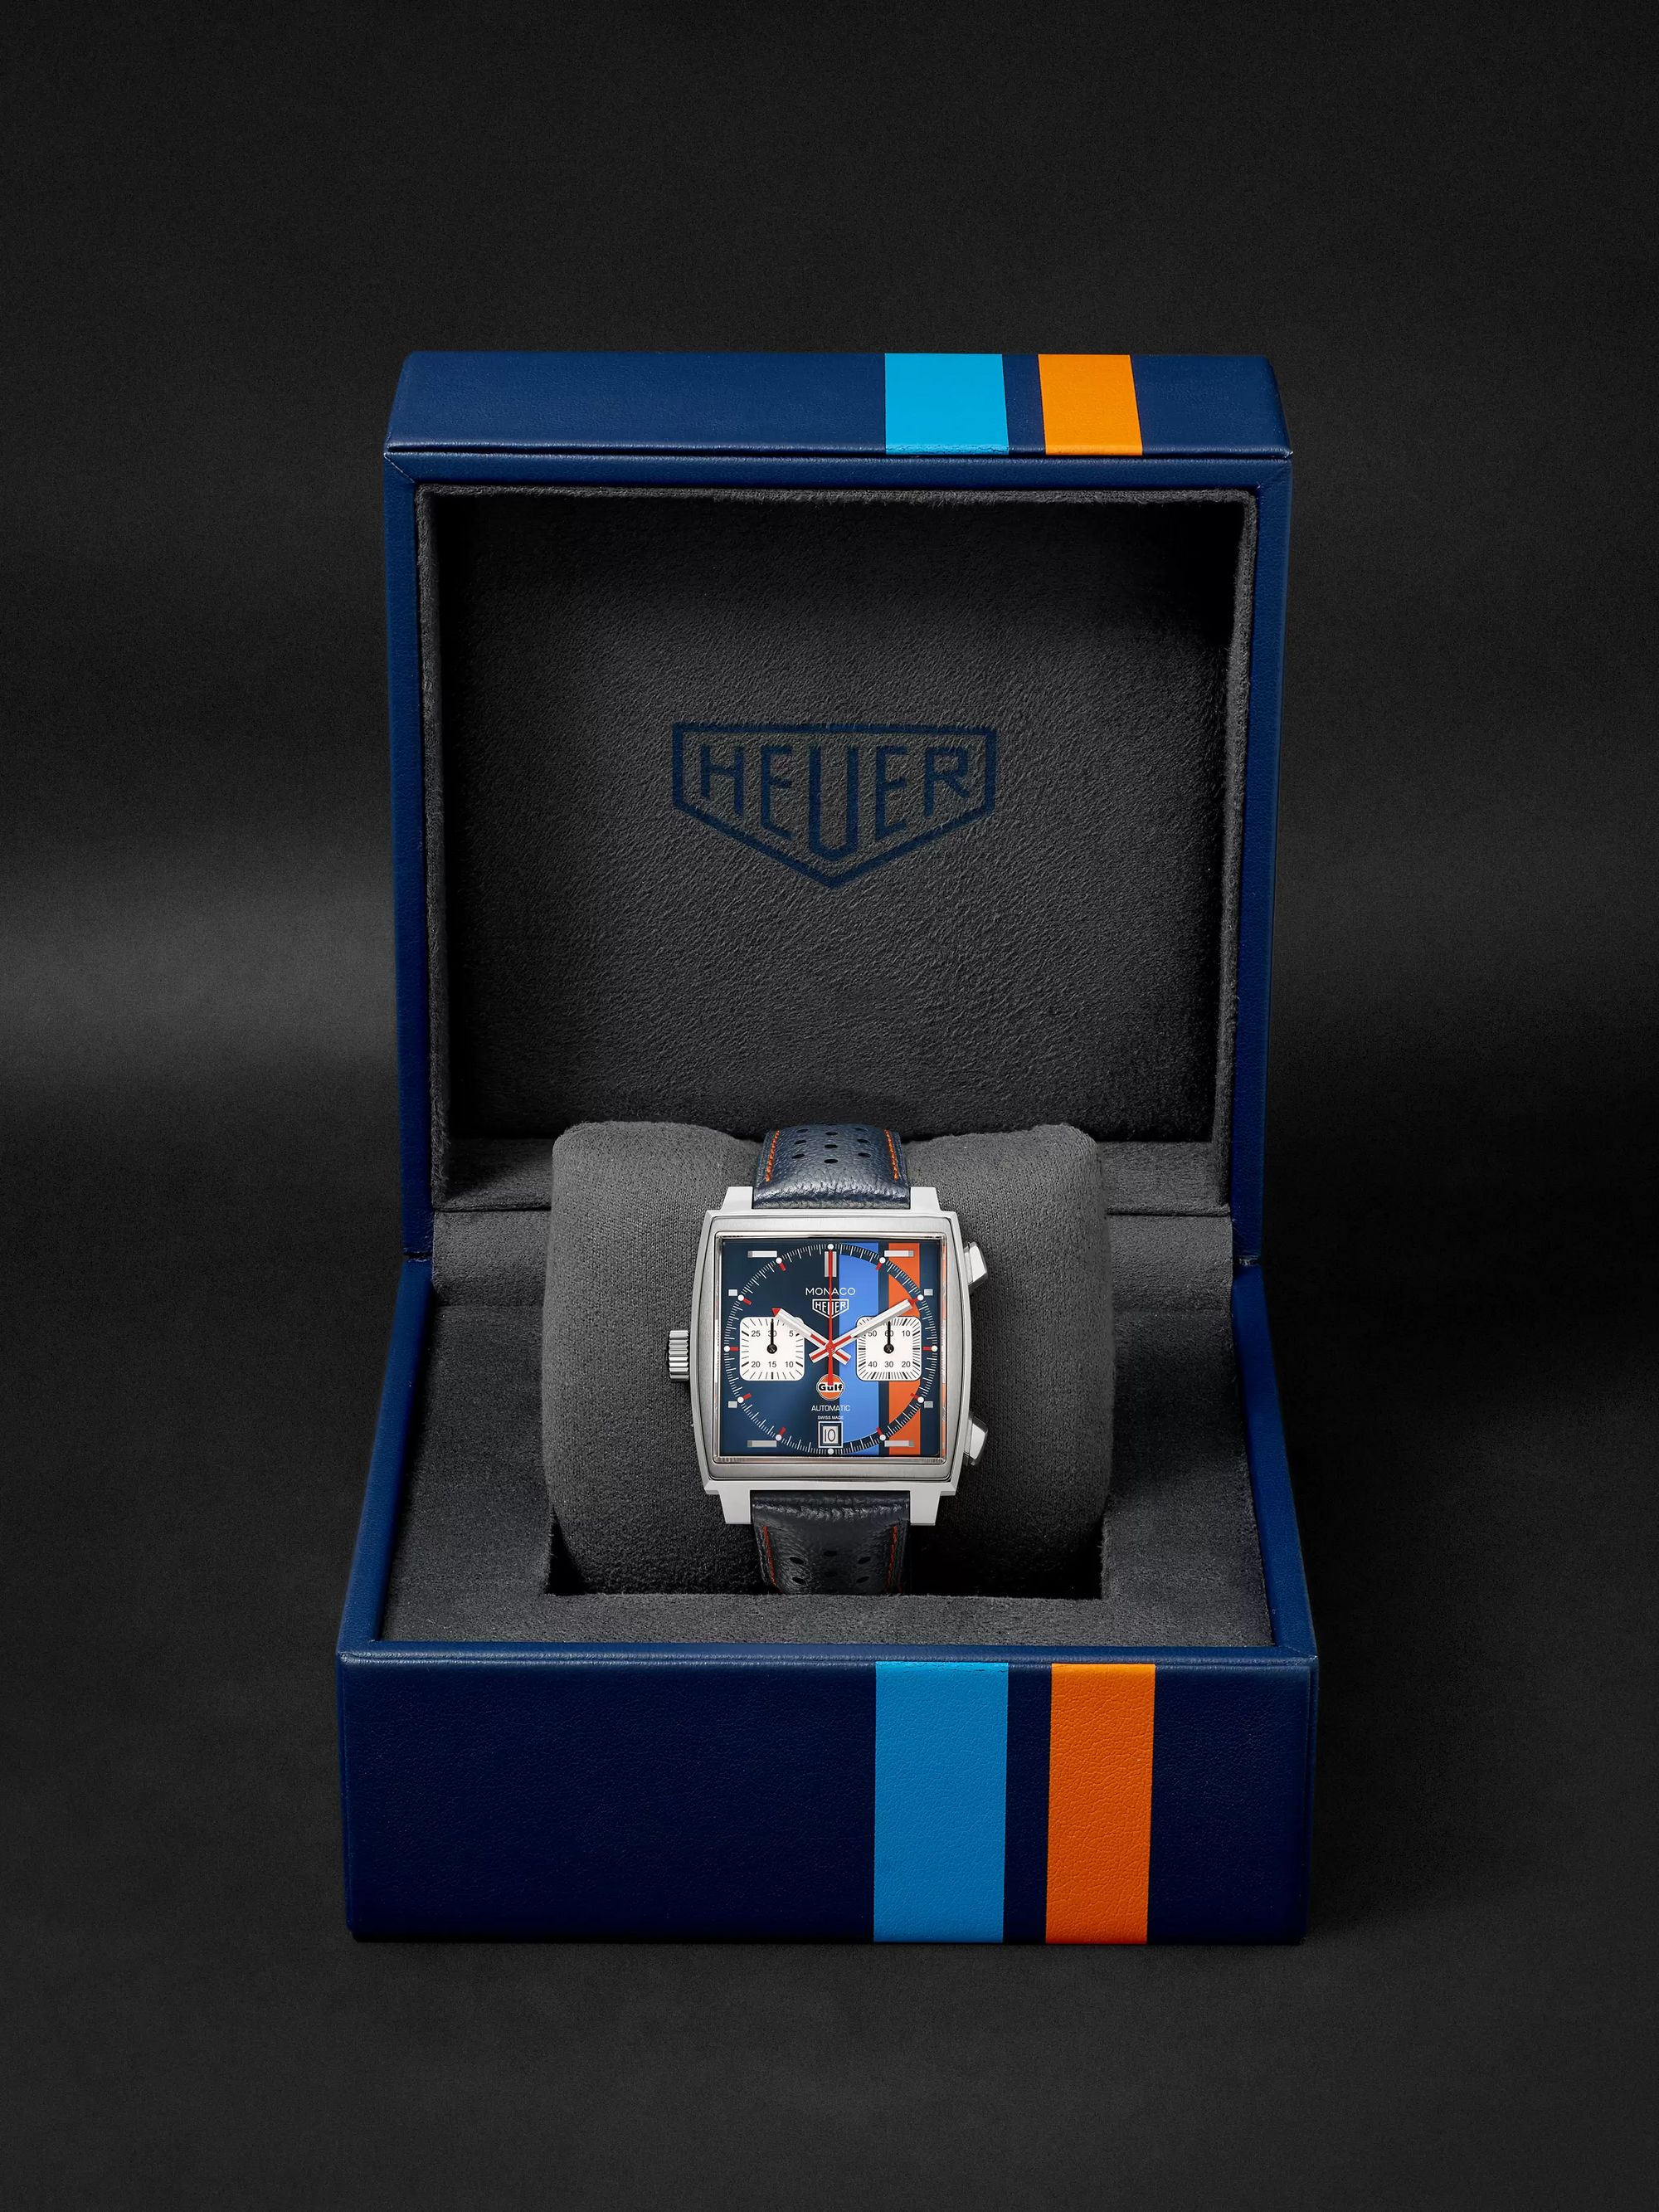 TAG Heuer Monaco Gulf Edition Automatic 39mm Steel and Leather Watch, Ref. No. CAW211R.FC6401